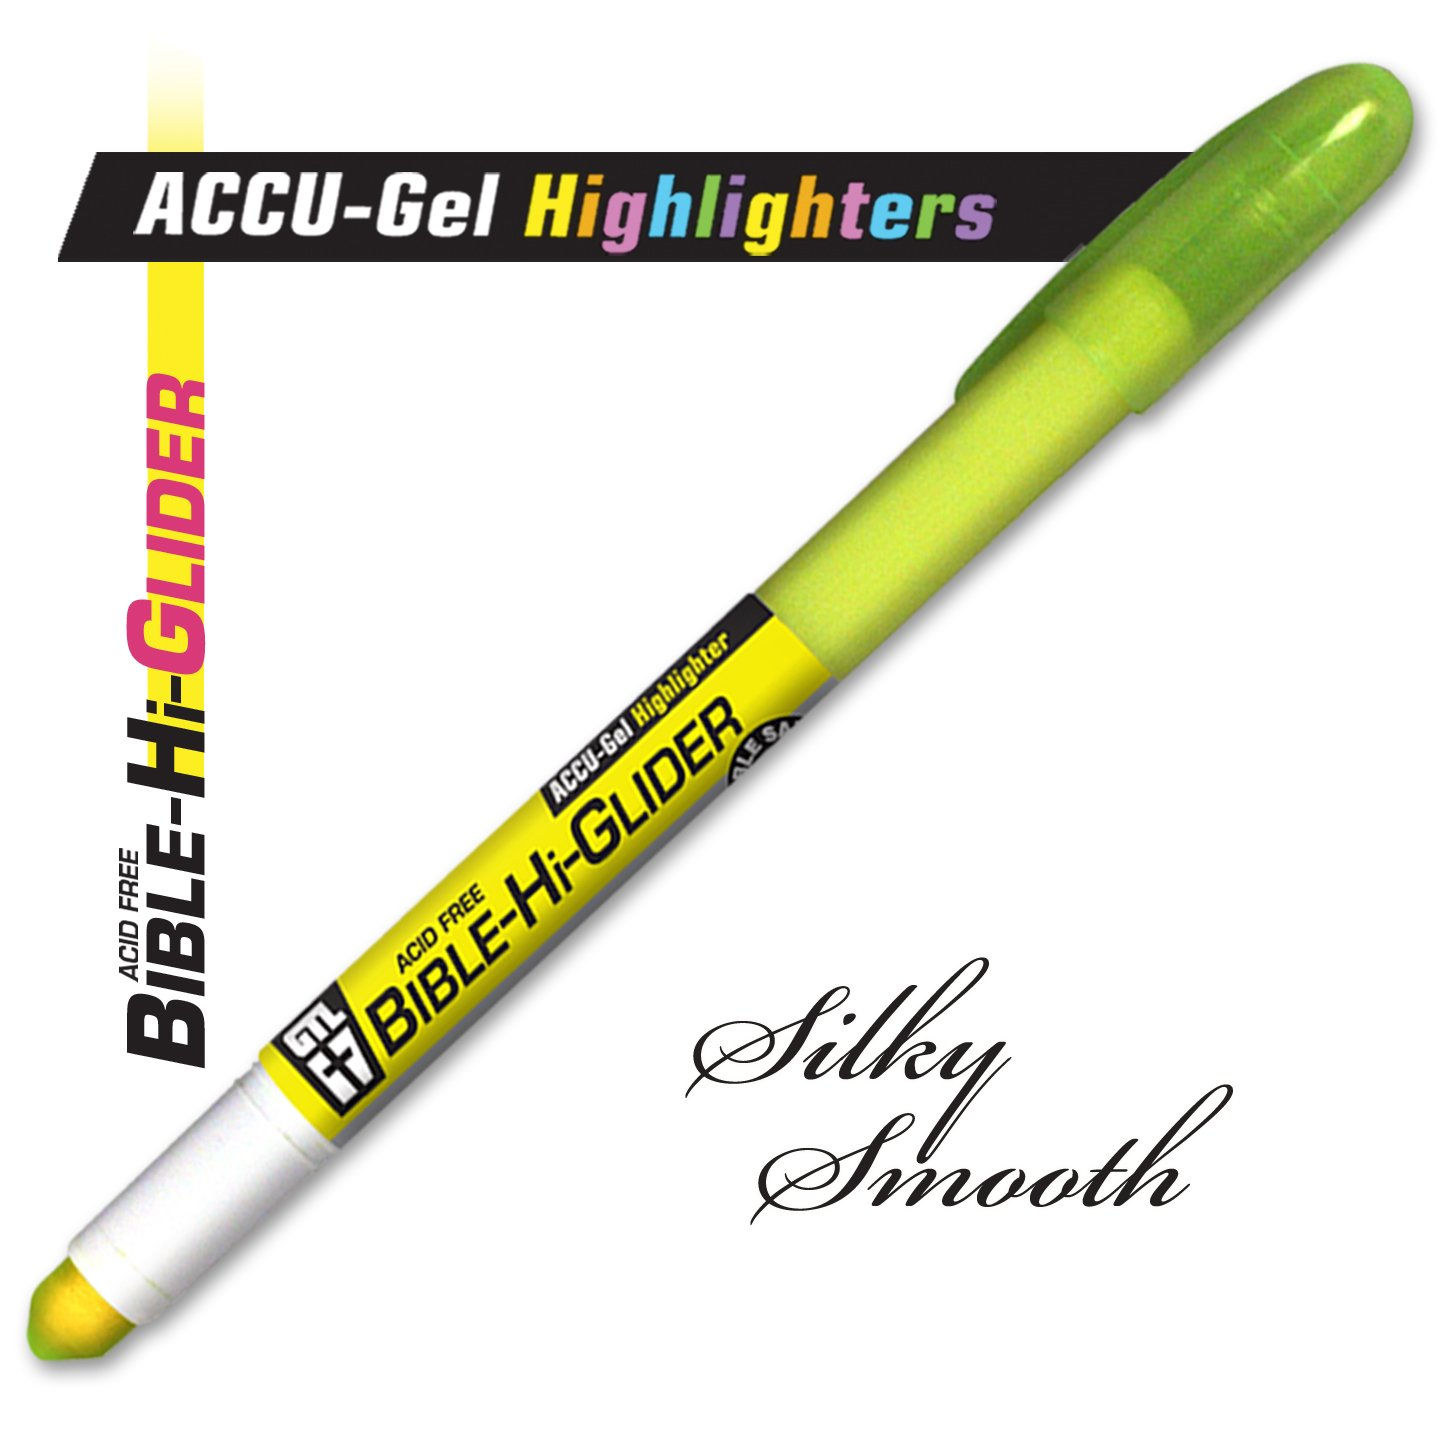 Accu-Gel Bible Highlighter Study Kit (Set of 6) - 4 Sets by G.T. Luscombe Company, Inc. (Image #2)